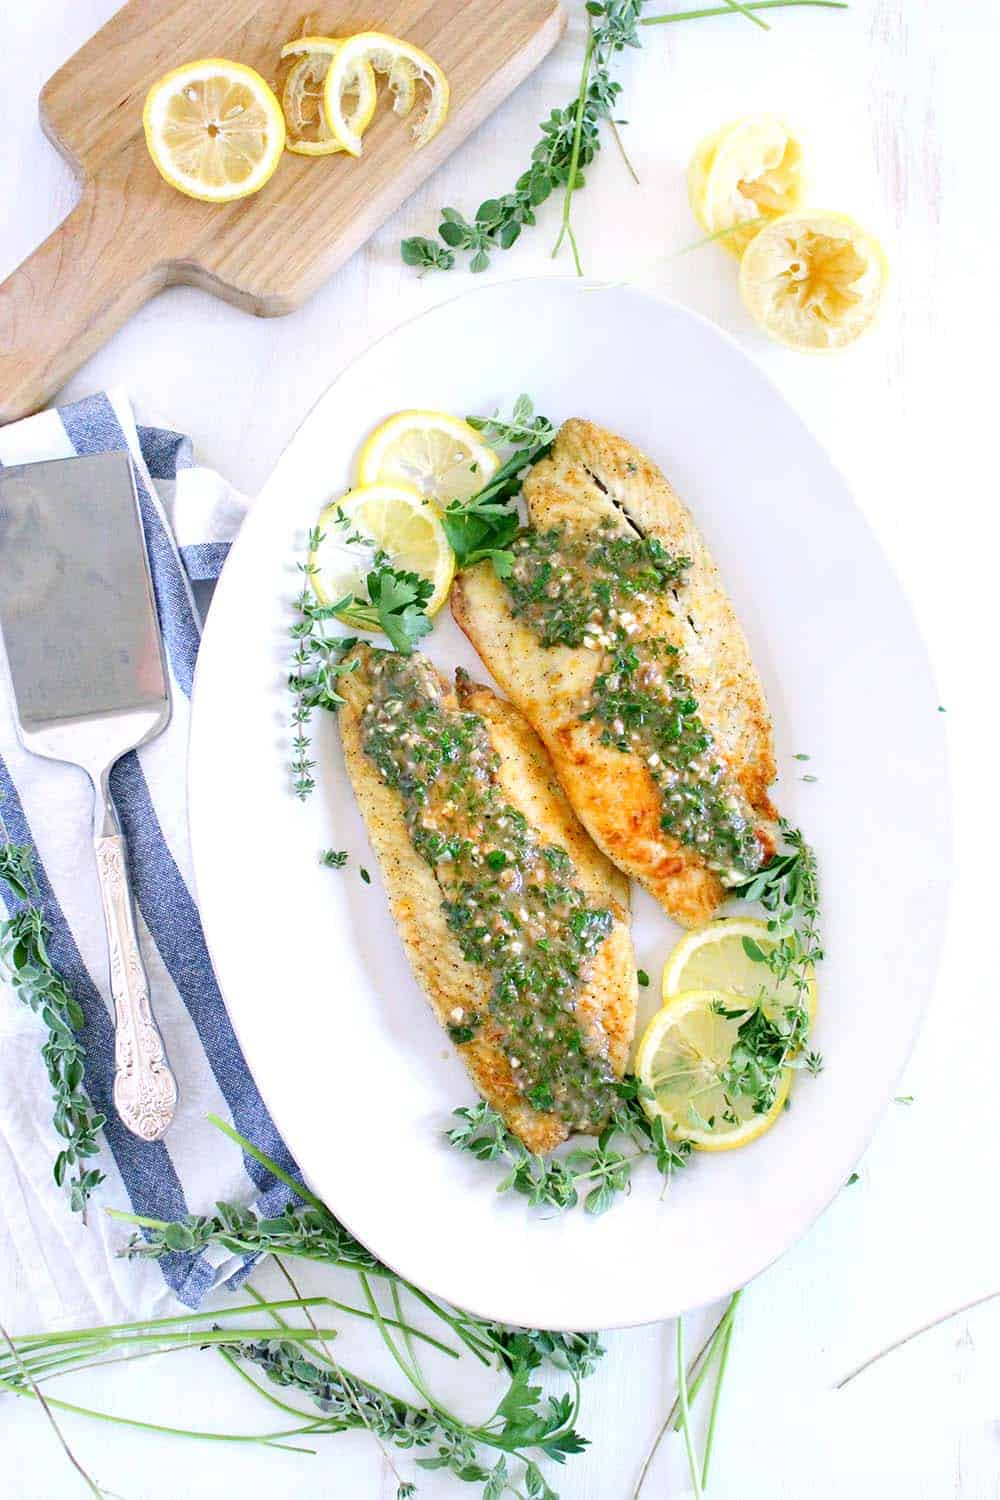 An overhead photograph of a platter of sea bass with lemon slices and a garlic herb sauce with a serving spatula.